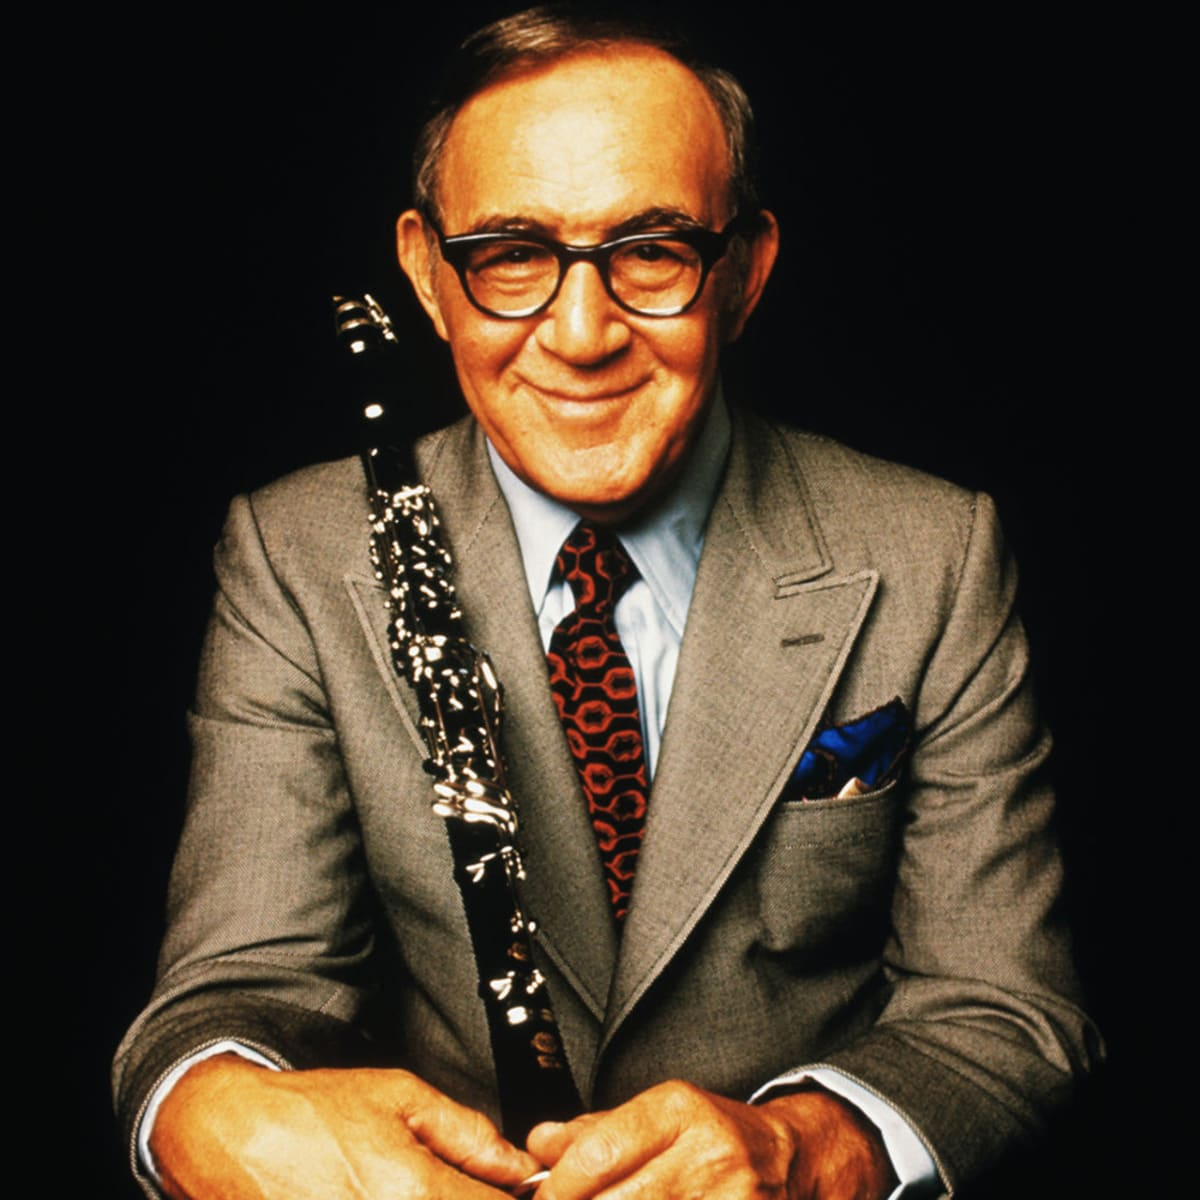 """He was among the numerous musicians who appeared in the 1998 movie """"blues brothers 2000,"""" starring dan aykroyd and john goodman. Benny Goodman Songs Carnegie Hall Career Biography"""